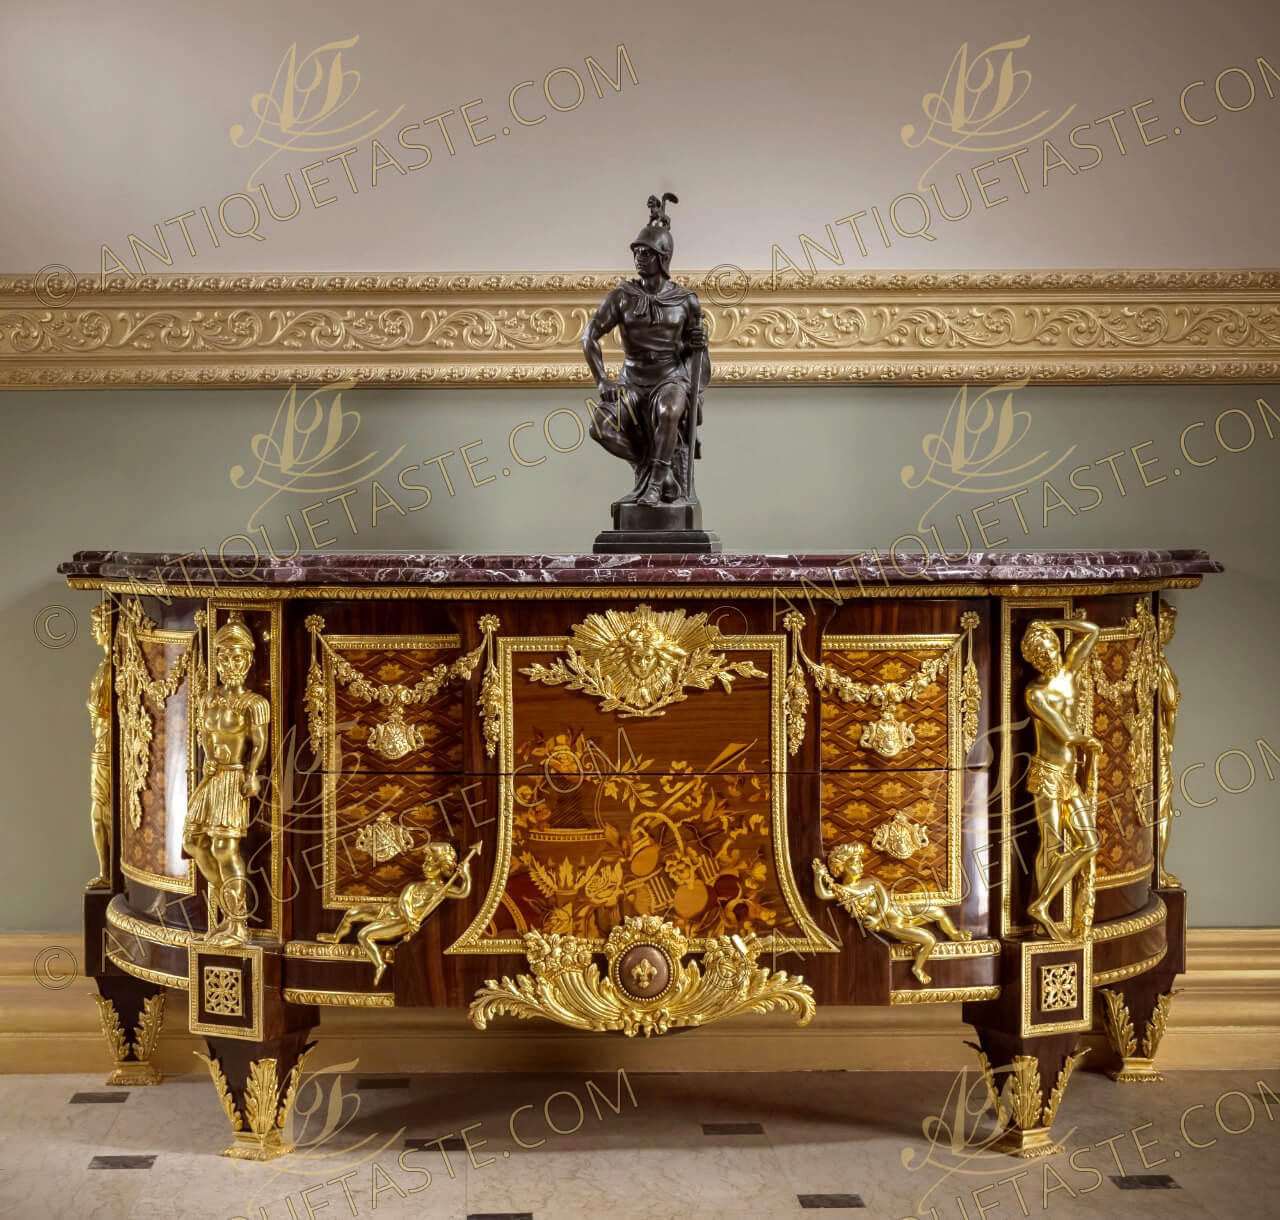 A French ormolu-mounted marquetry and parquetry D shaped commode, after the model by Jean-Henri Riesener, Circa 1890, surmounted by a shaped and stepped veined marble top, centered to the front by a pair of drawers headed by an sunburst winged mask ormolu mount, with central panel inlaid sans traverse with an ewer and basket of fruit and flowers flanked on each side by cherubs emblematic of Bienfaisance and Justice, above a fleur-de-lys-studded ormolu globe and cornucopia, flanked to each side by inlaid parquetry cupboard door hung with floral swags and ribbon-suspended military trophies, the angles mounted with imitation of the four armorial emblematic of Courage, Force, Prudence and Tempérence, on tapering acanthus-mounted feet